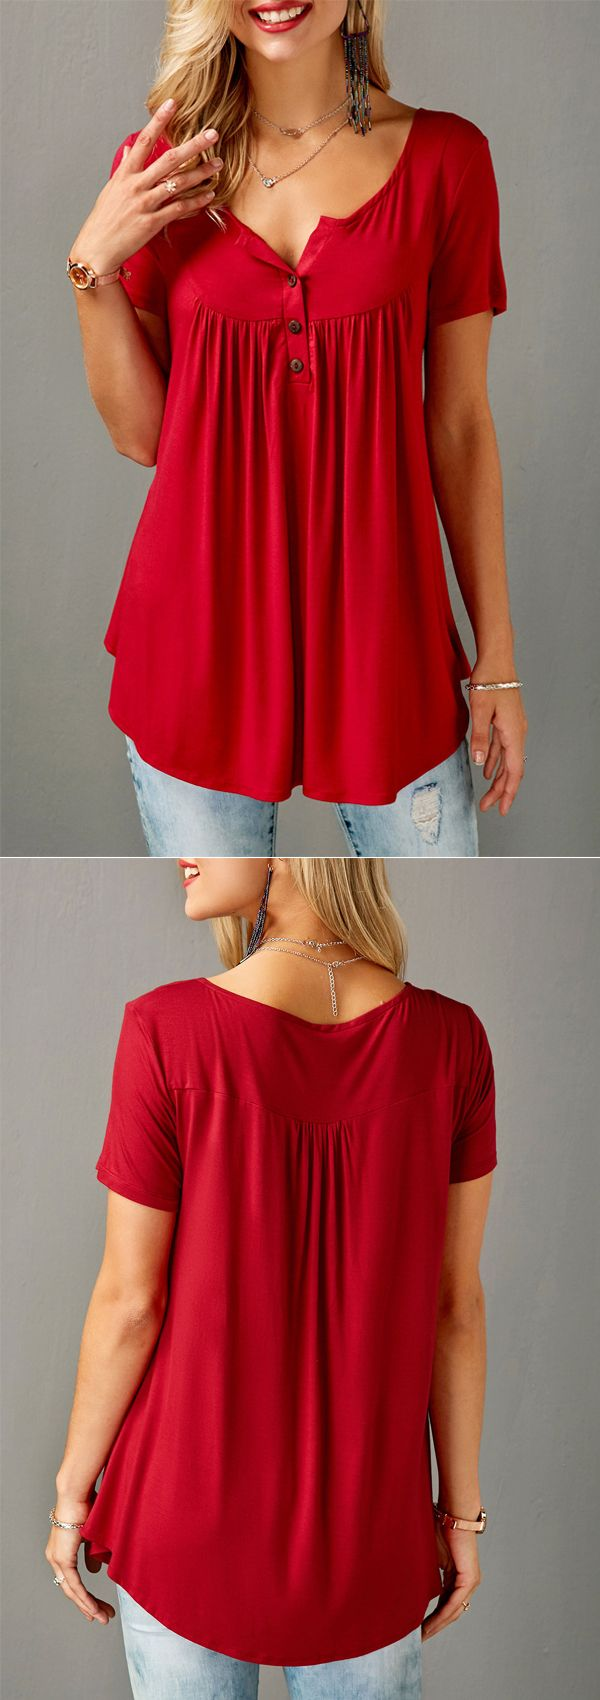 Another flowy top!